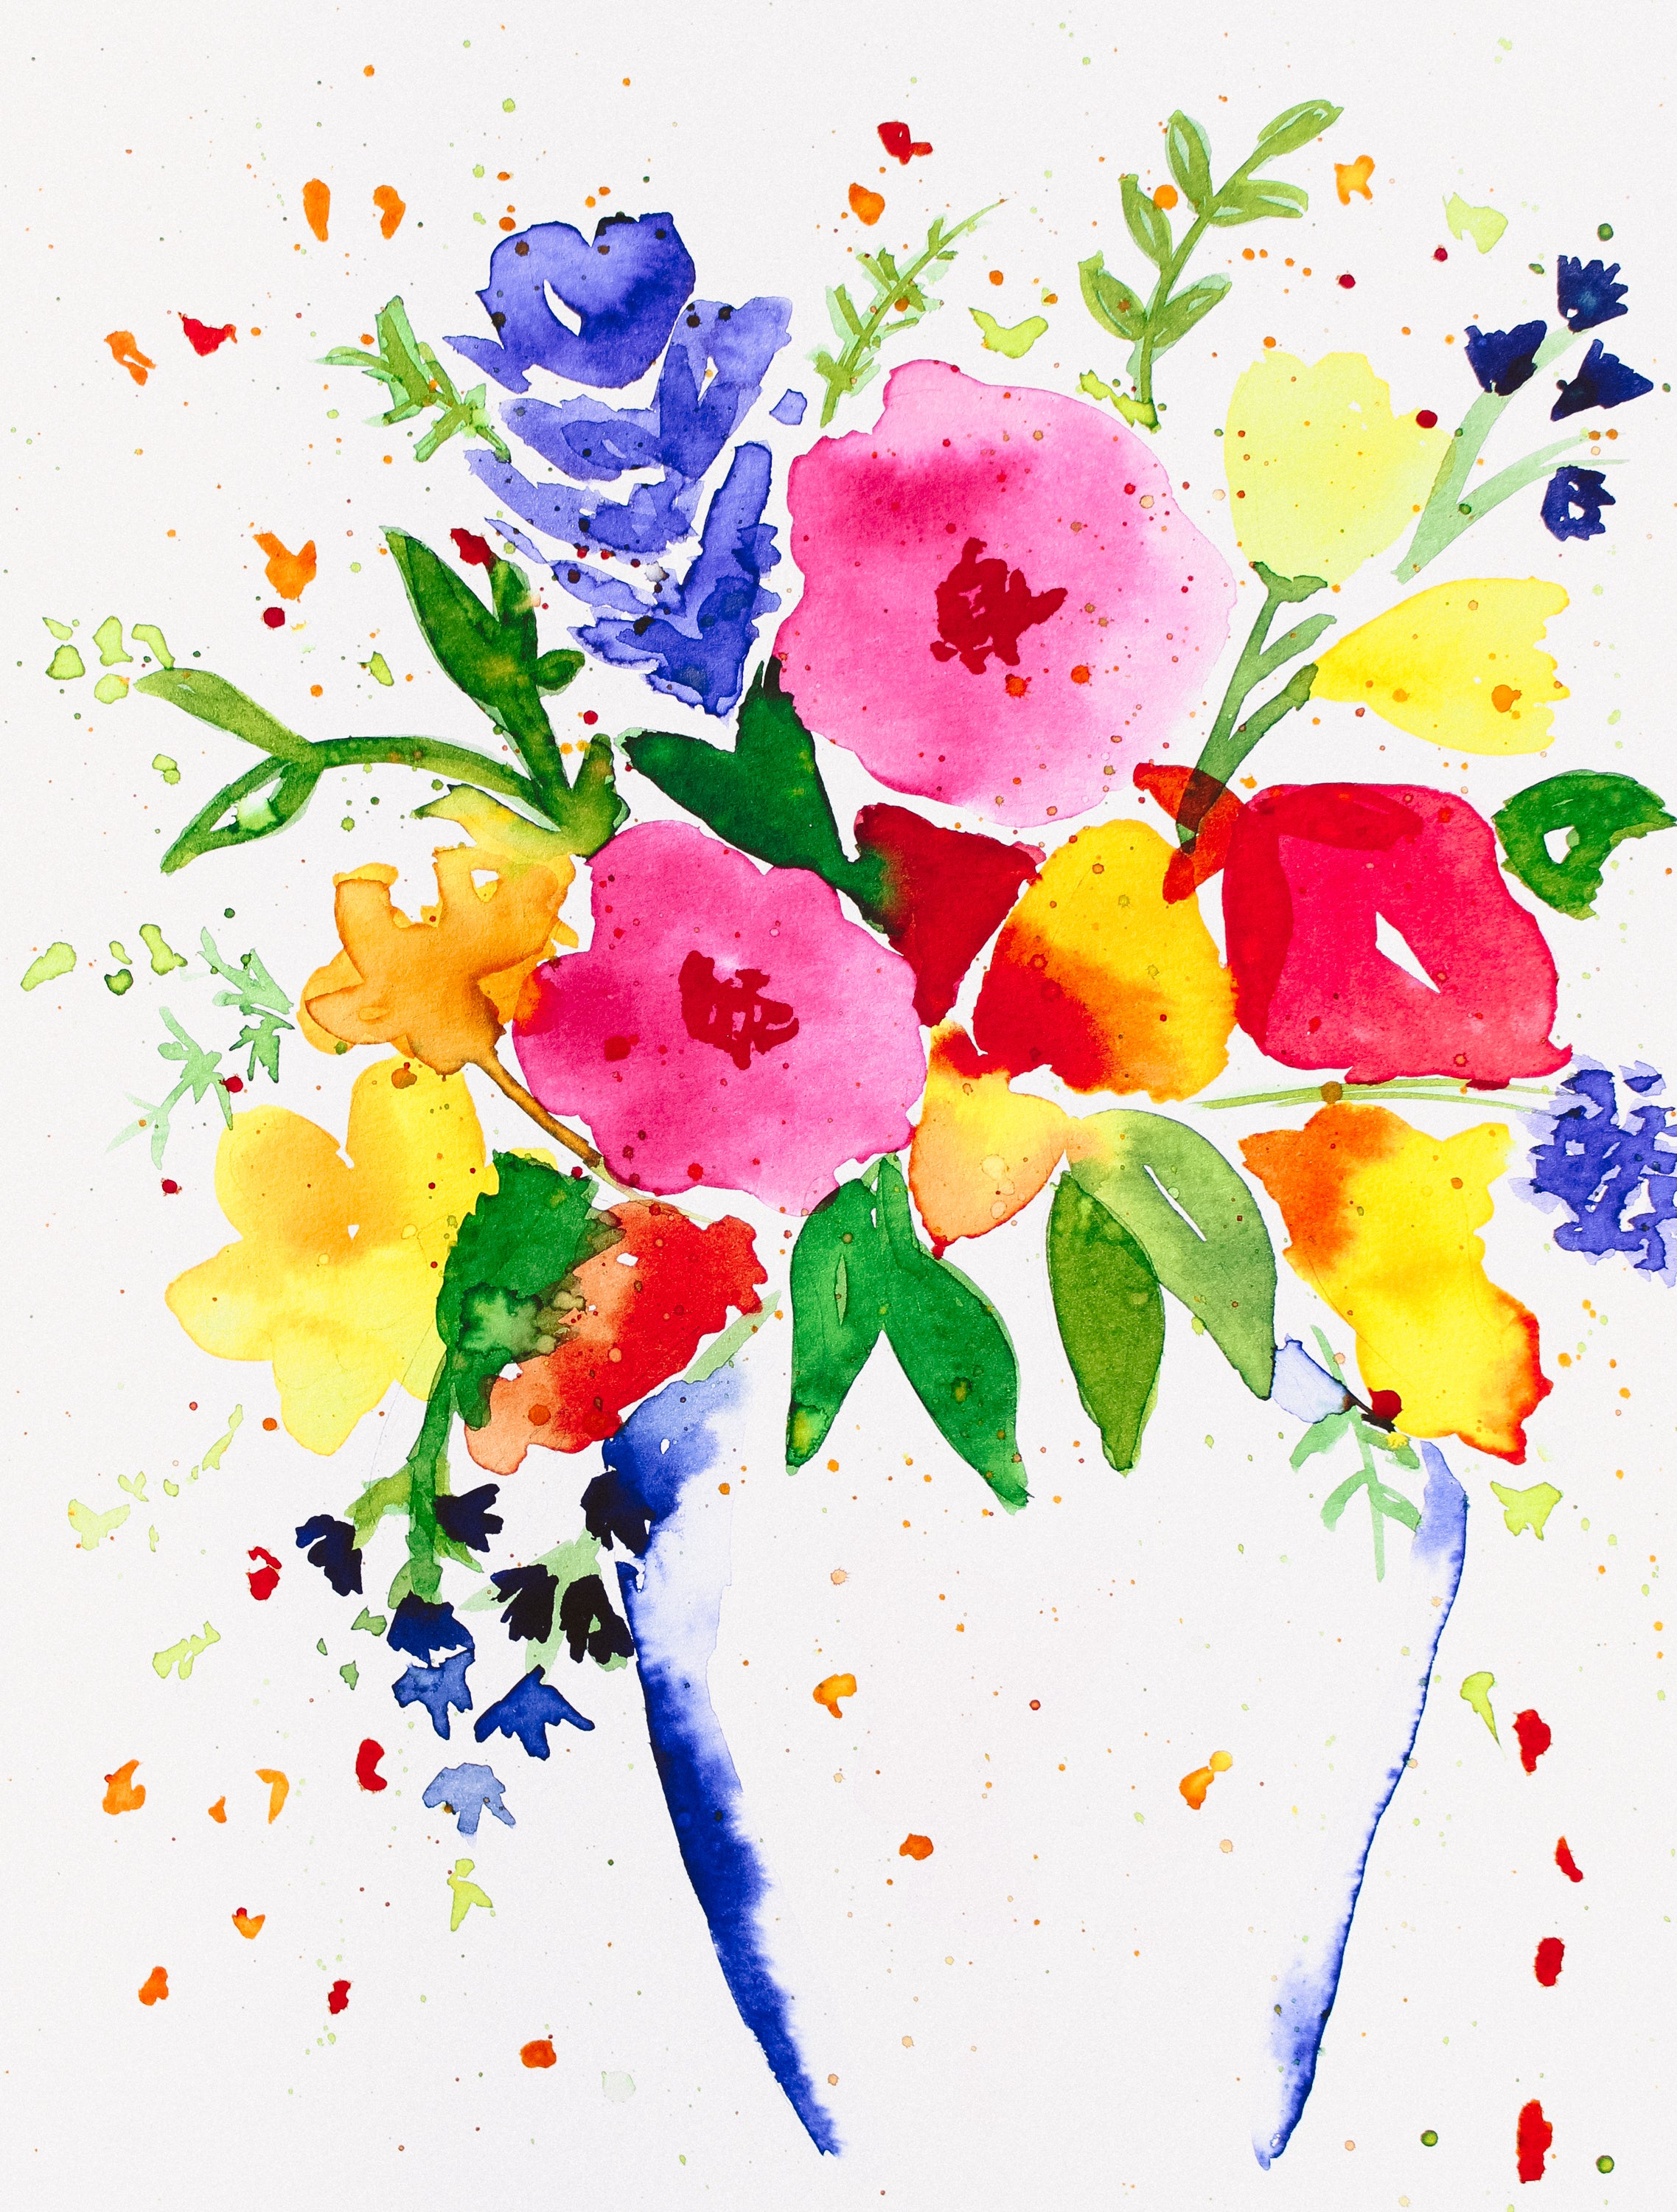 Watercolor Vibrant Abstract Flowers Digital Download